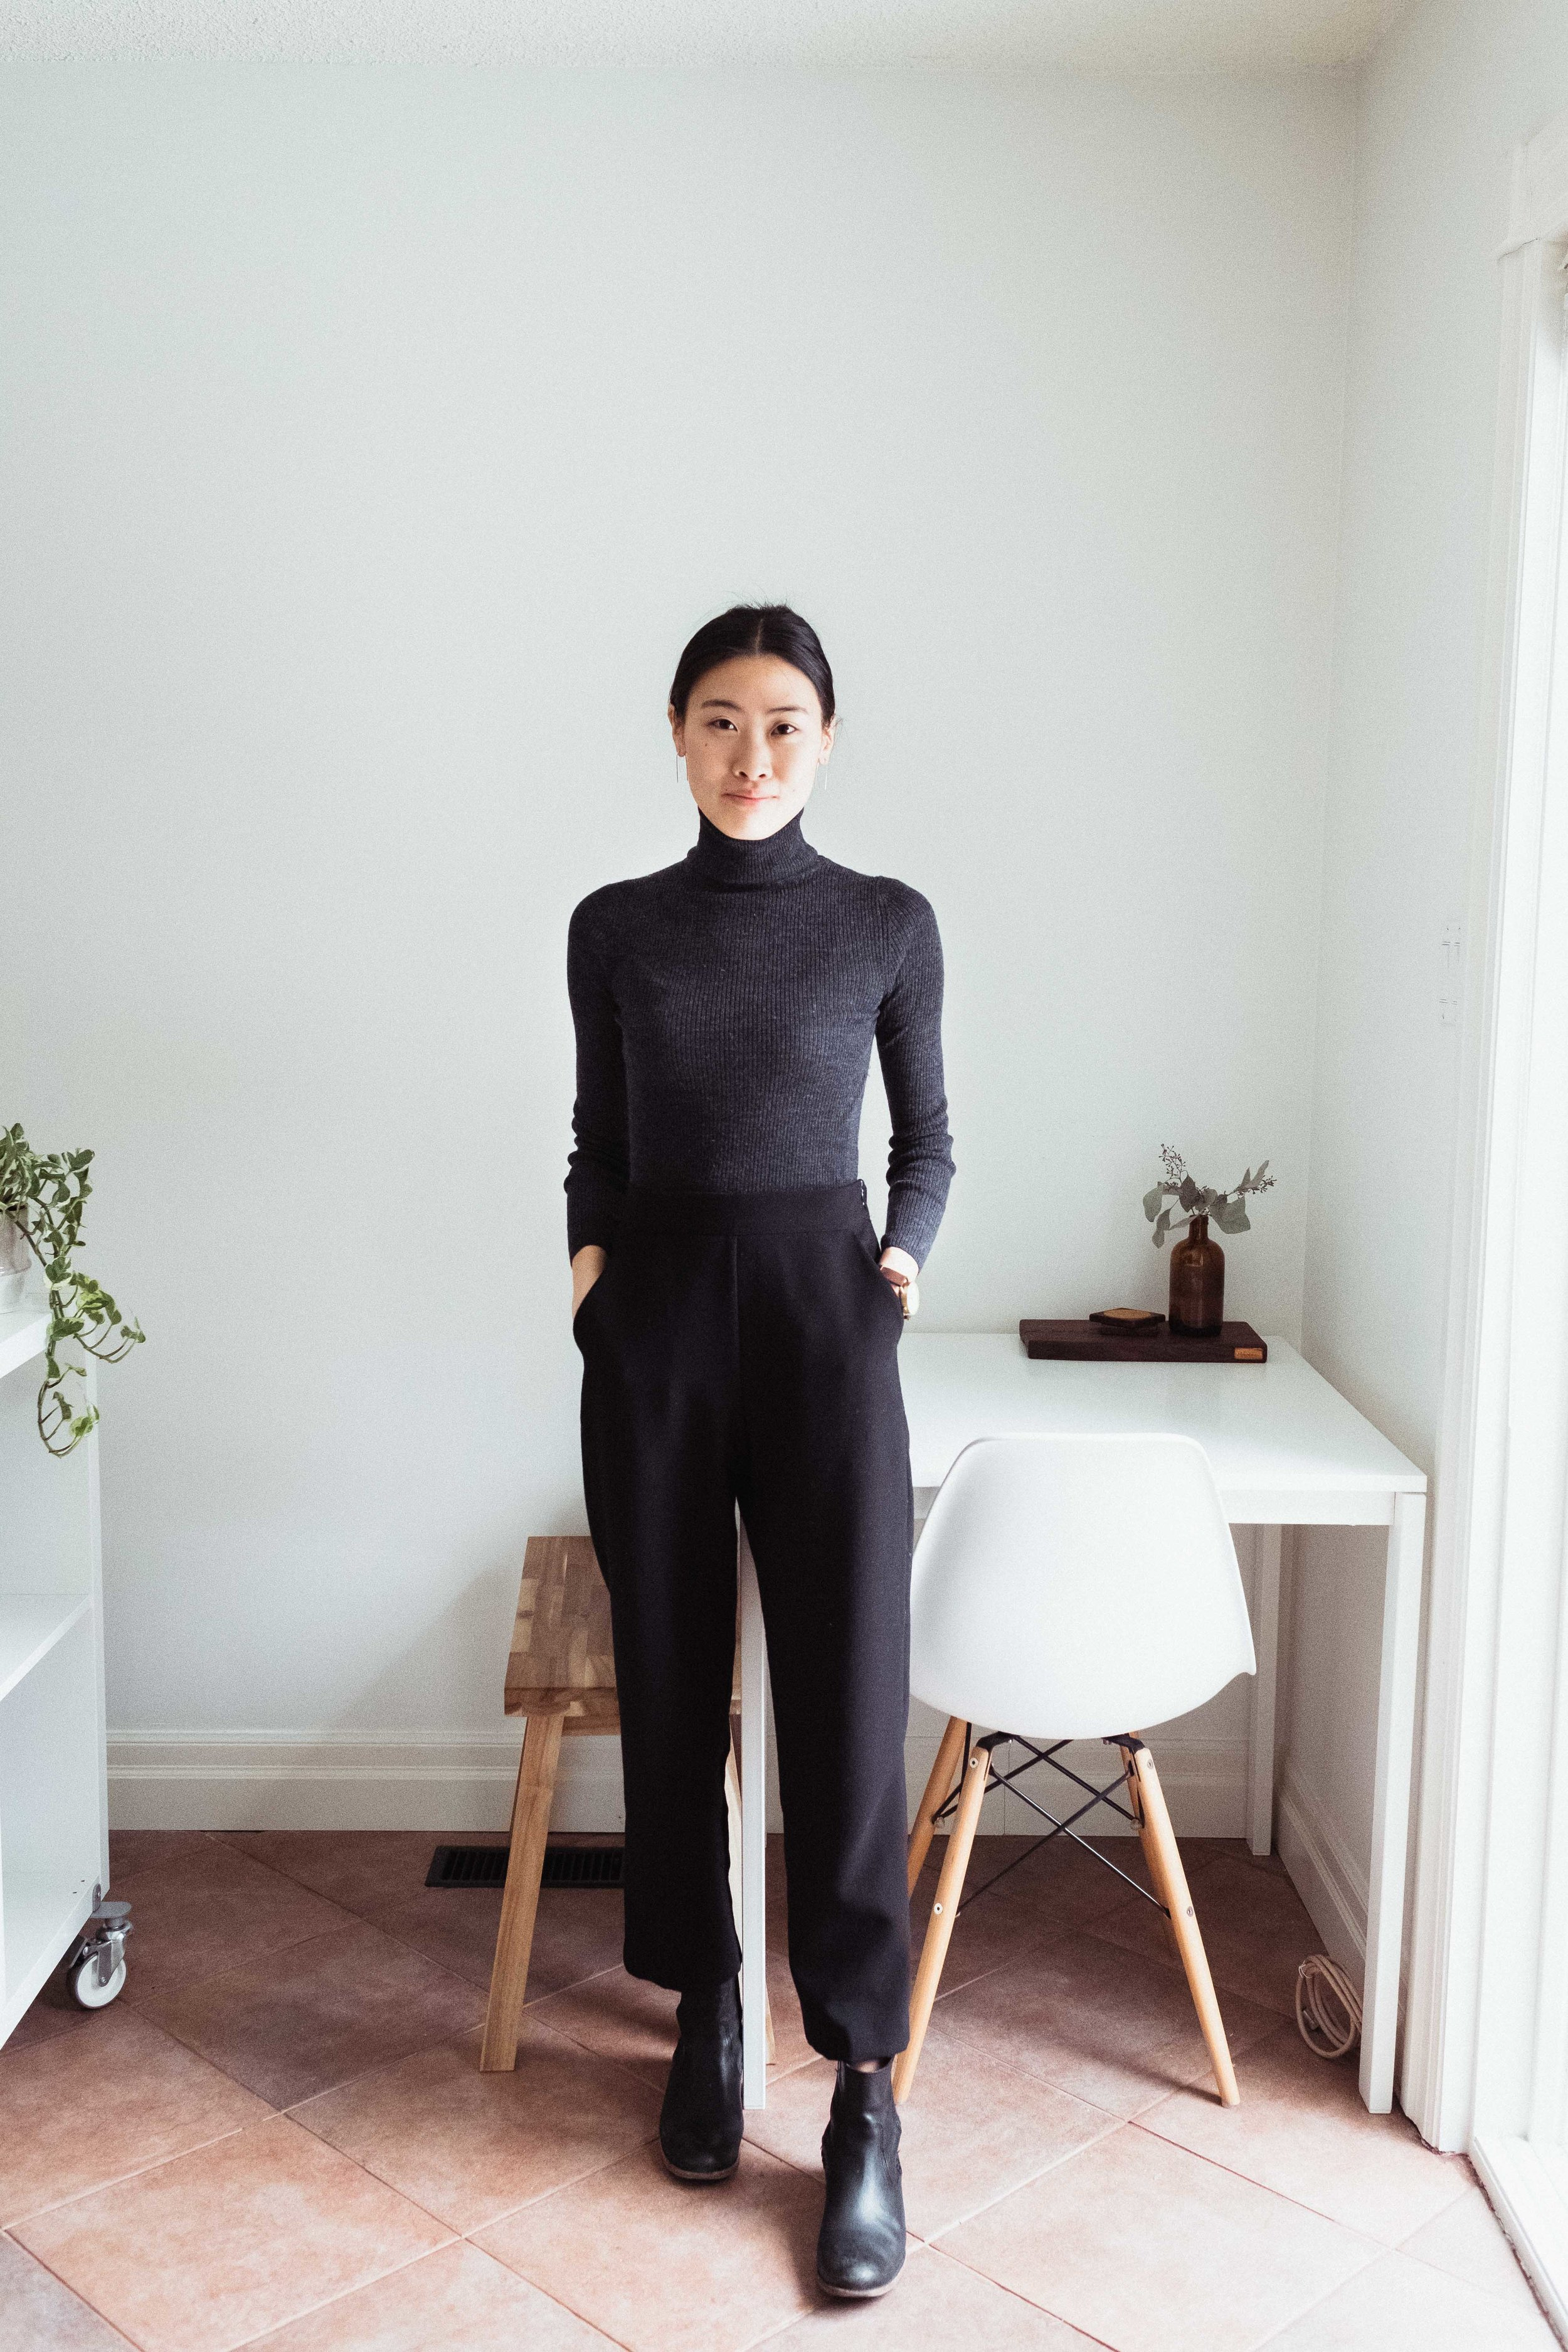 This is my 100% turtleneck from UNIQLO paired with my black trousers from Oak + Fort.